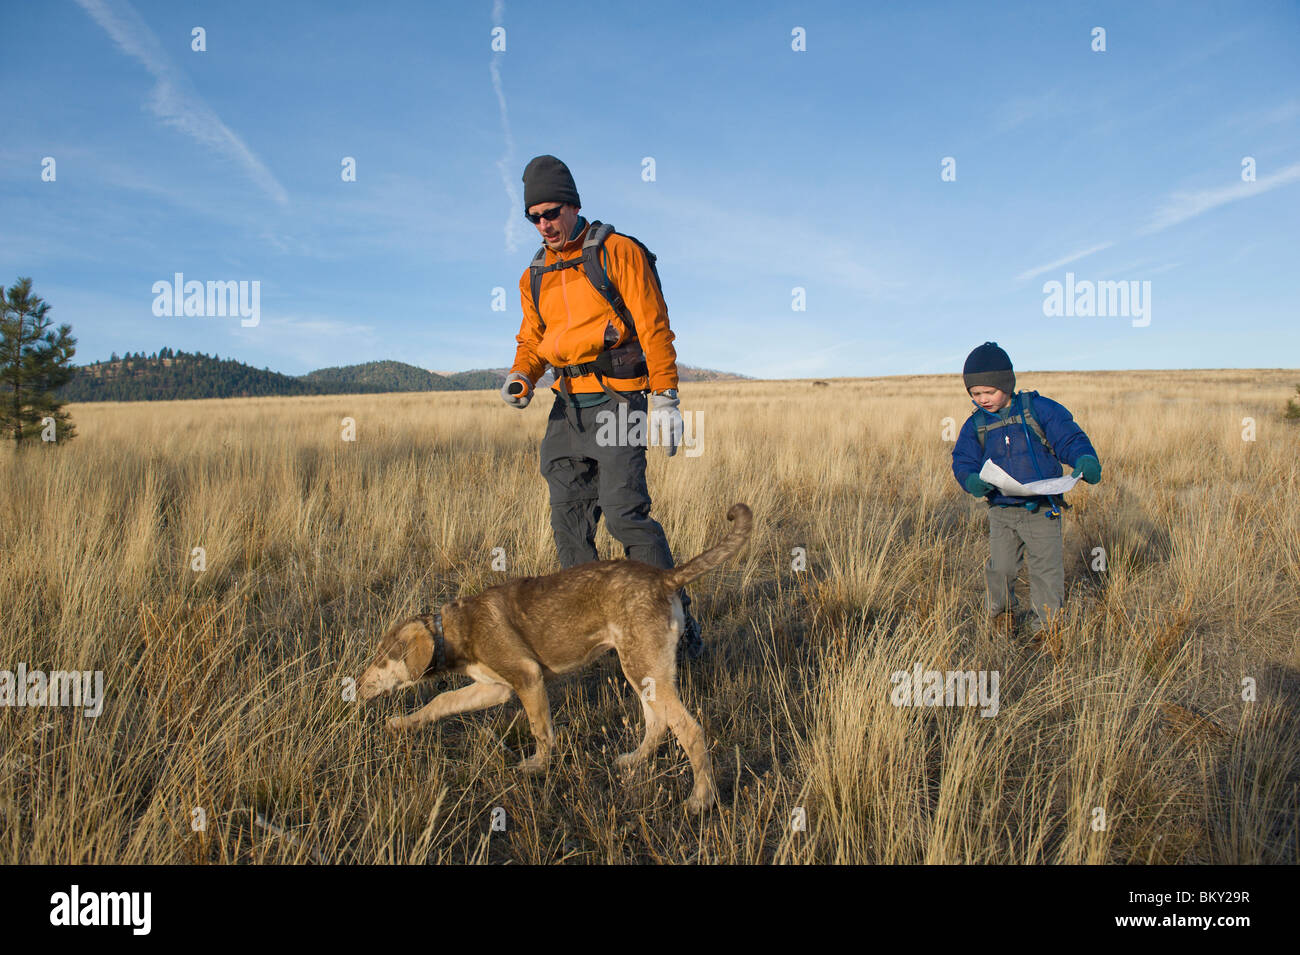 A young boy takes a break from his hike to find the right route on his map. - Stock Image